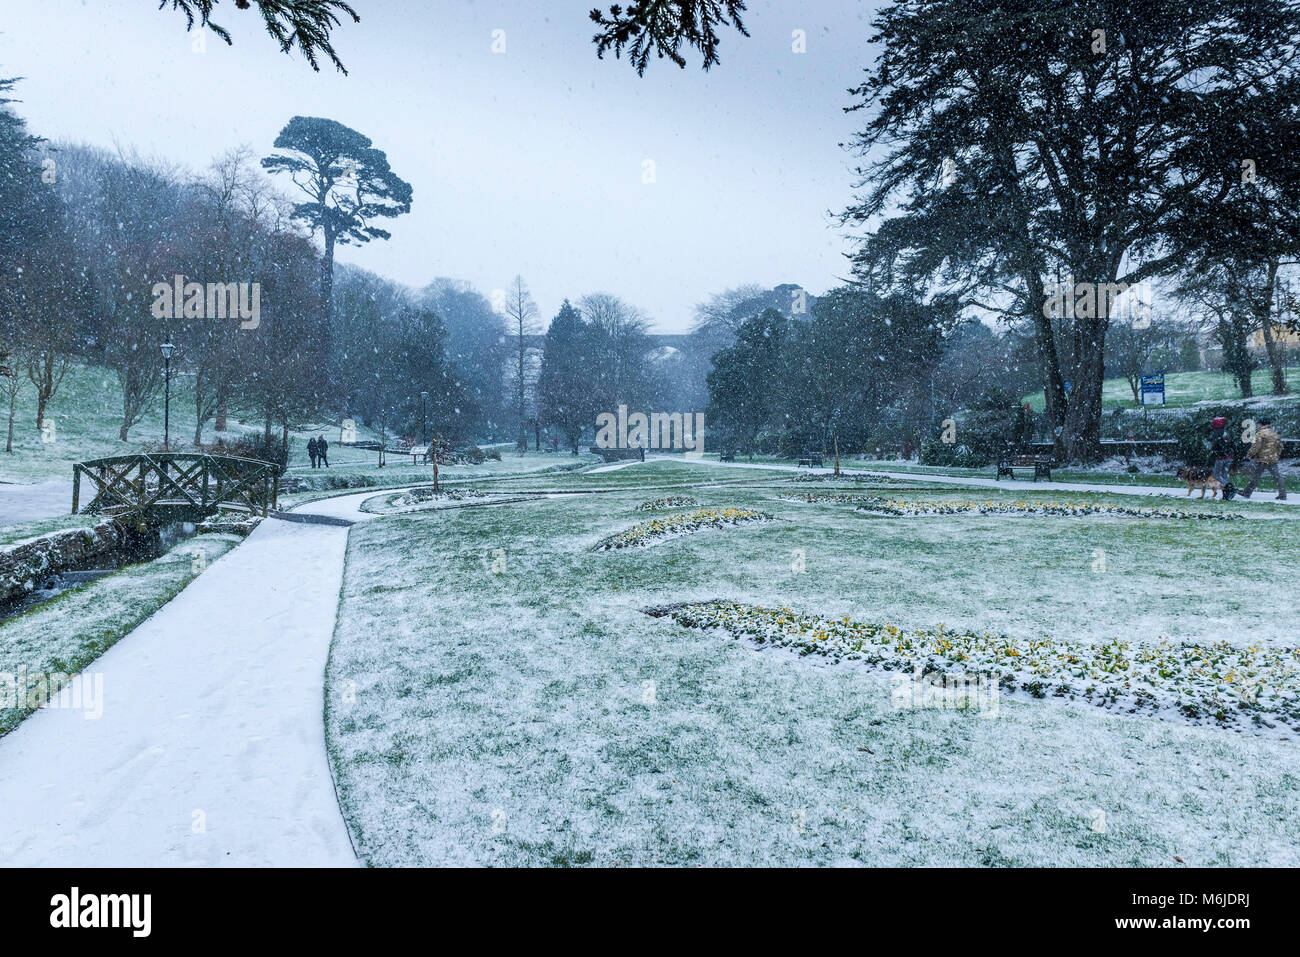 Heavy snowfal in Trenance Gardens in Newquay Cornwall. - Stock Image